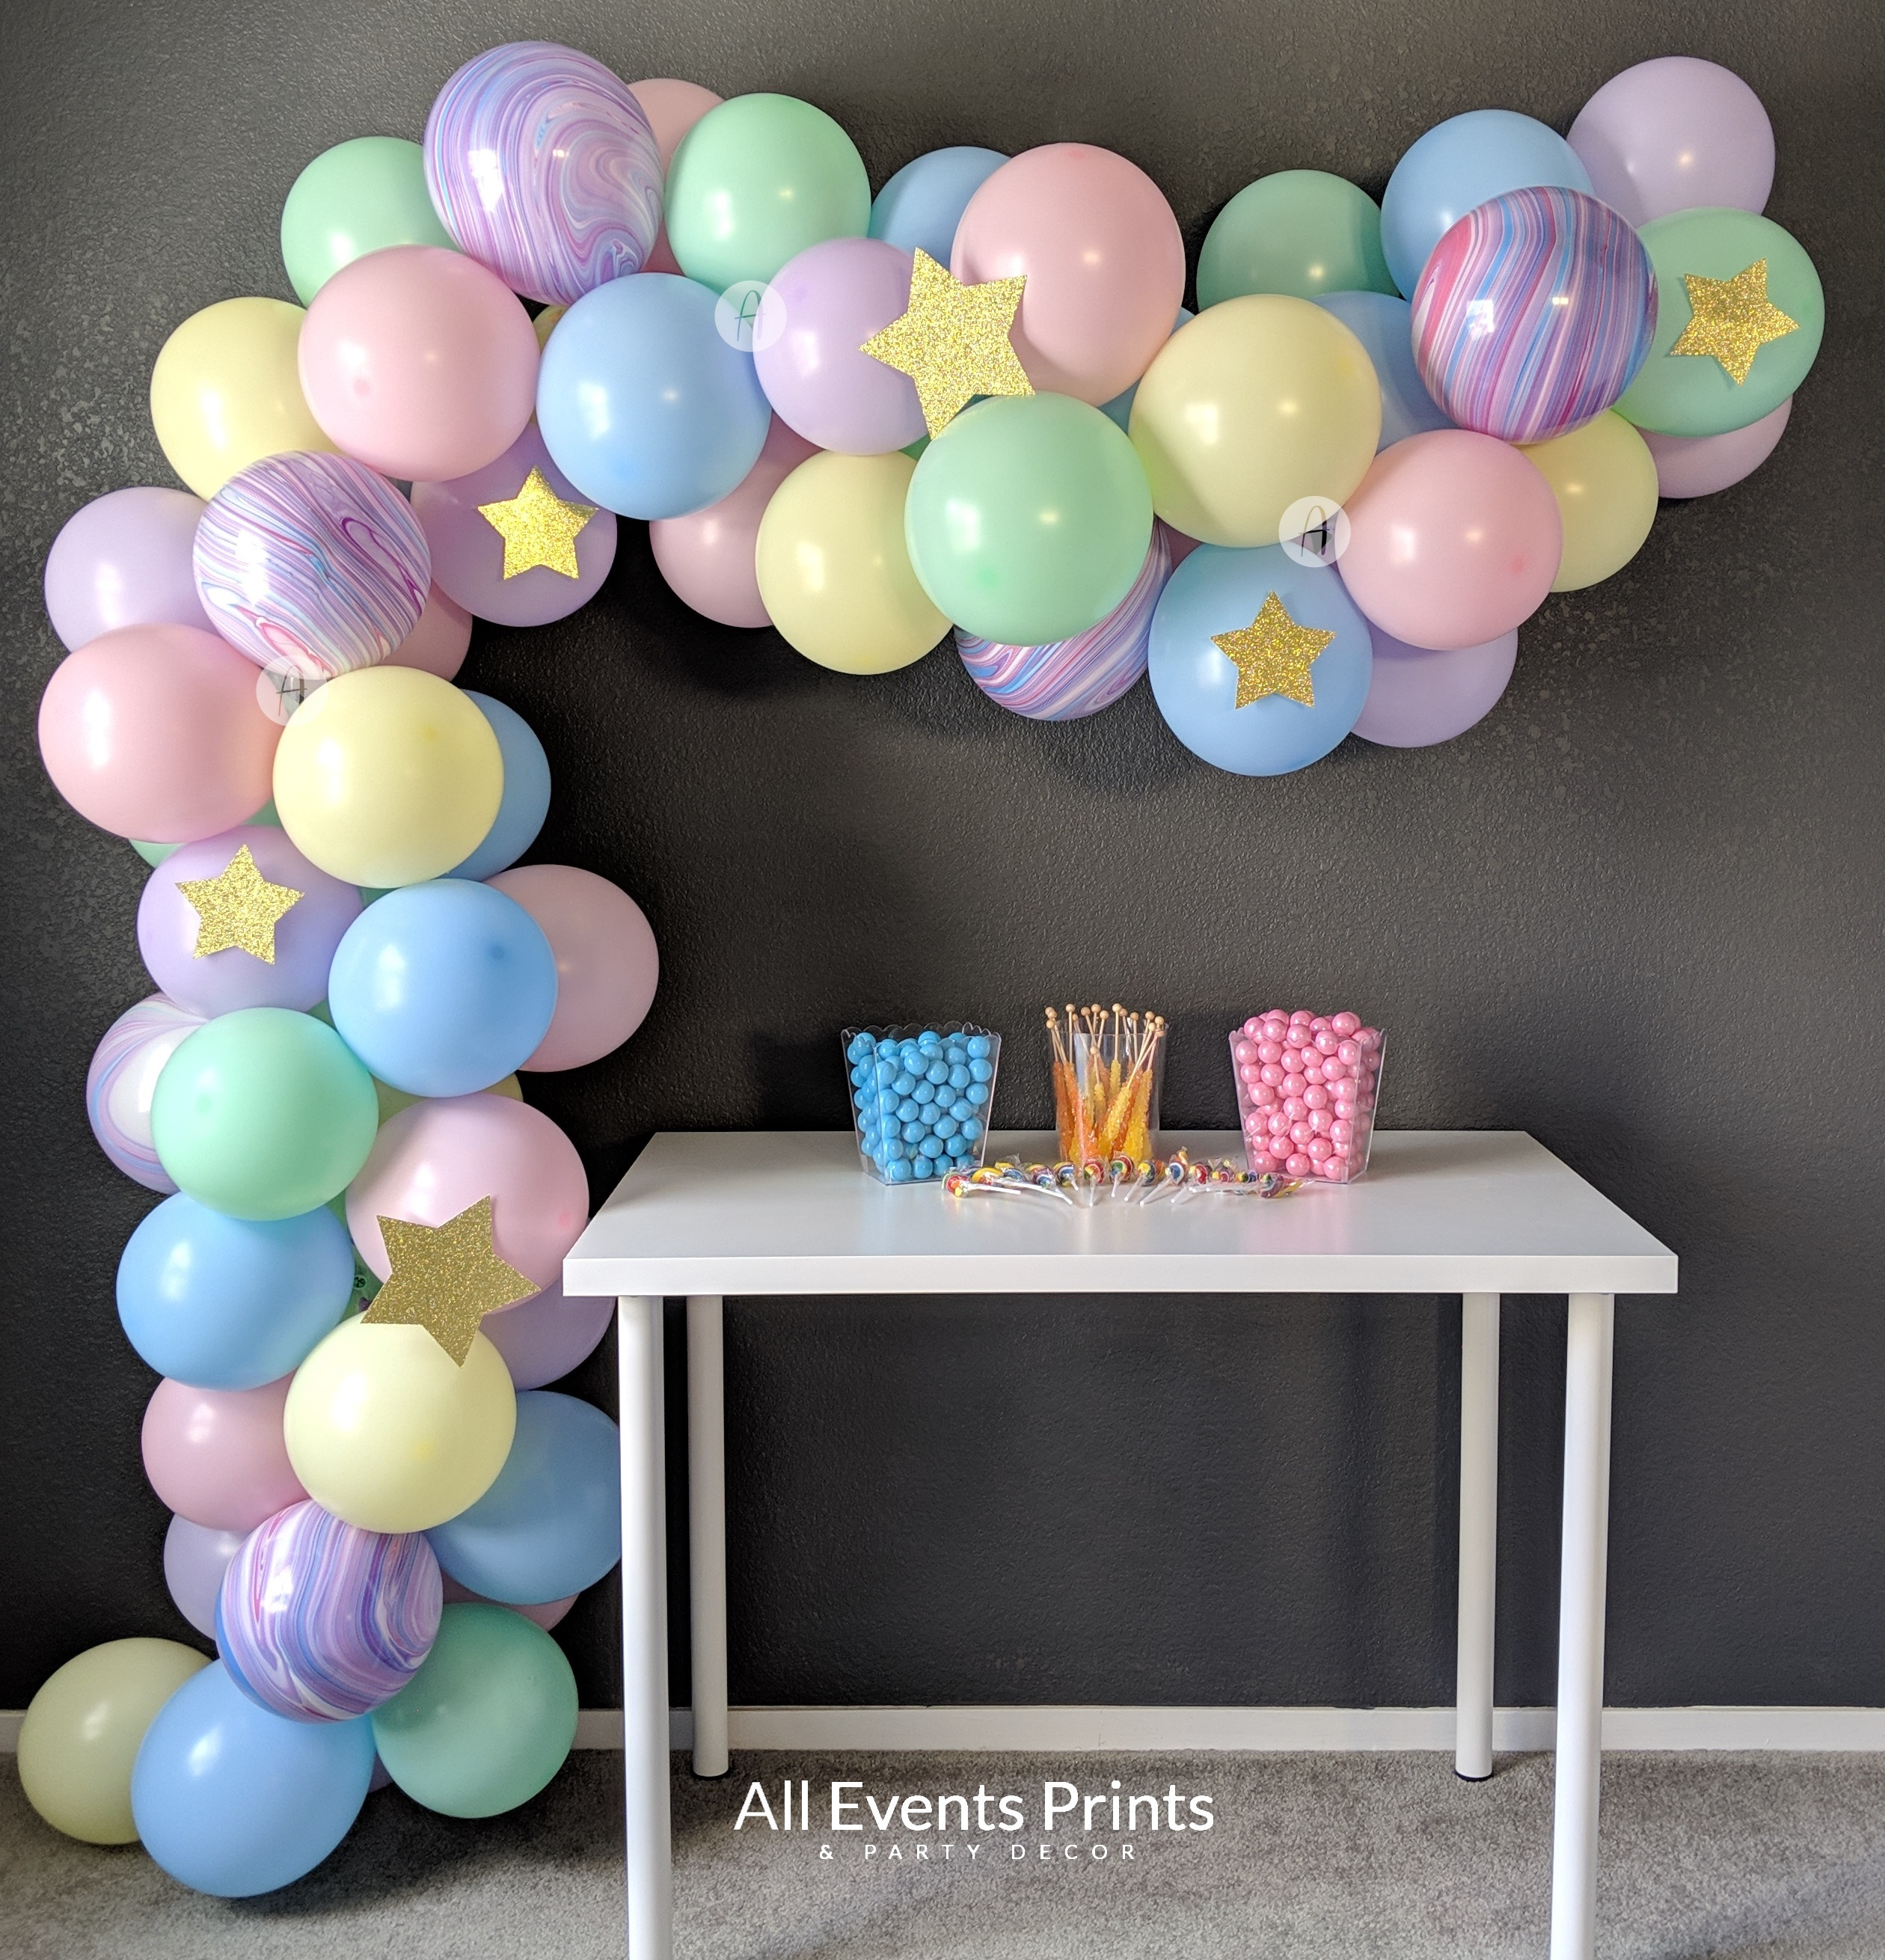 Unicorn Balloon Garland Pastel Rainbow Diy Kit 5 Ft To 25 Ft Includes Everything That You Will Need For Assembly All Events Prints Party Decor